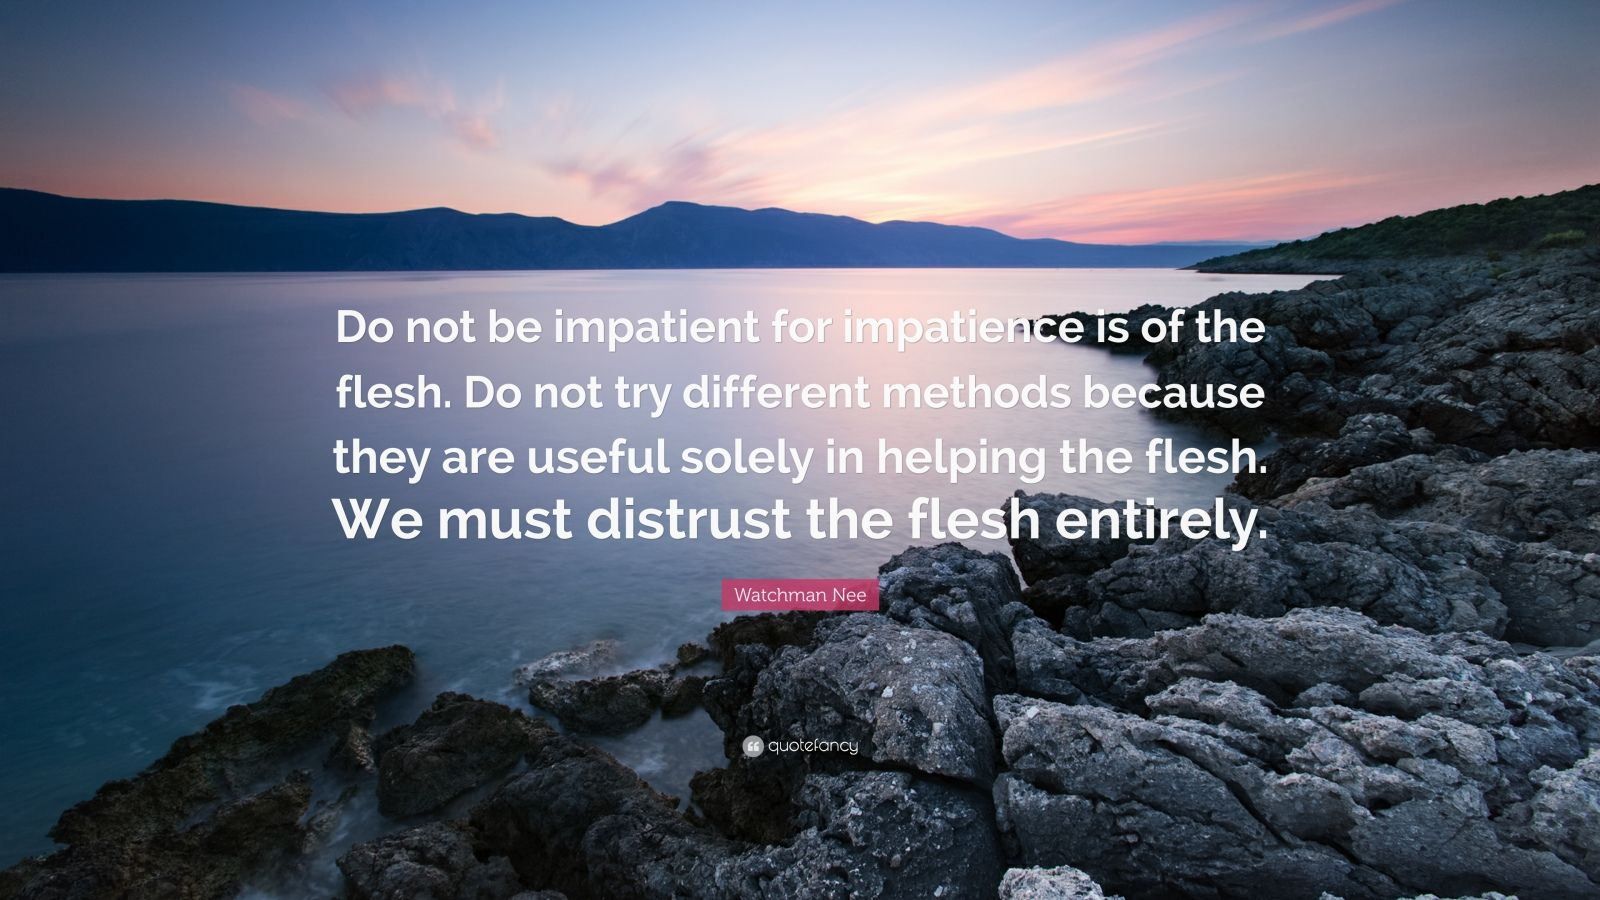 """Watchman Nee Quote: """"Do not be impatient for impatience is of the flesh. Do not try different methods because they are useful solely in helping the flesh. We must distrust the flesh entirely."""""""